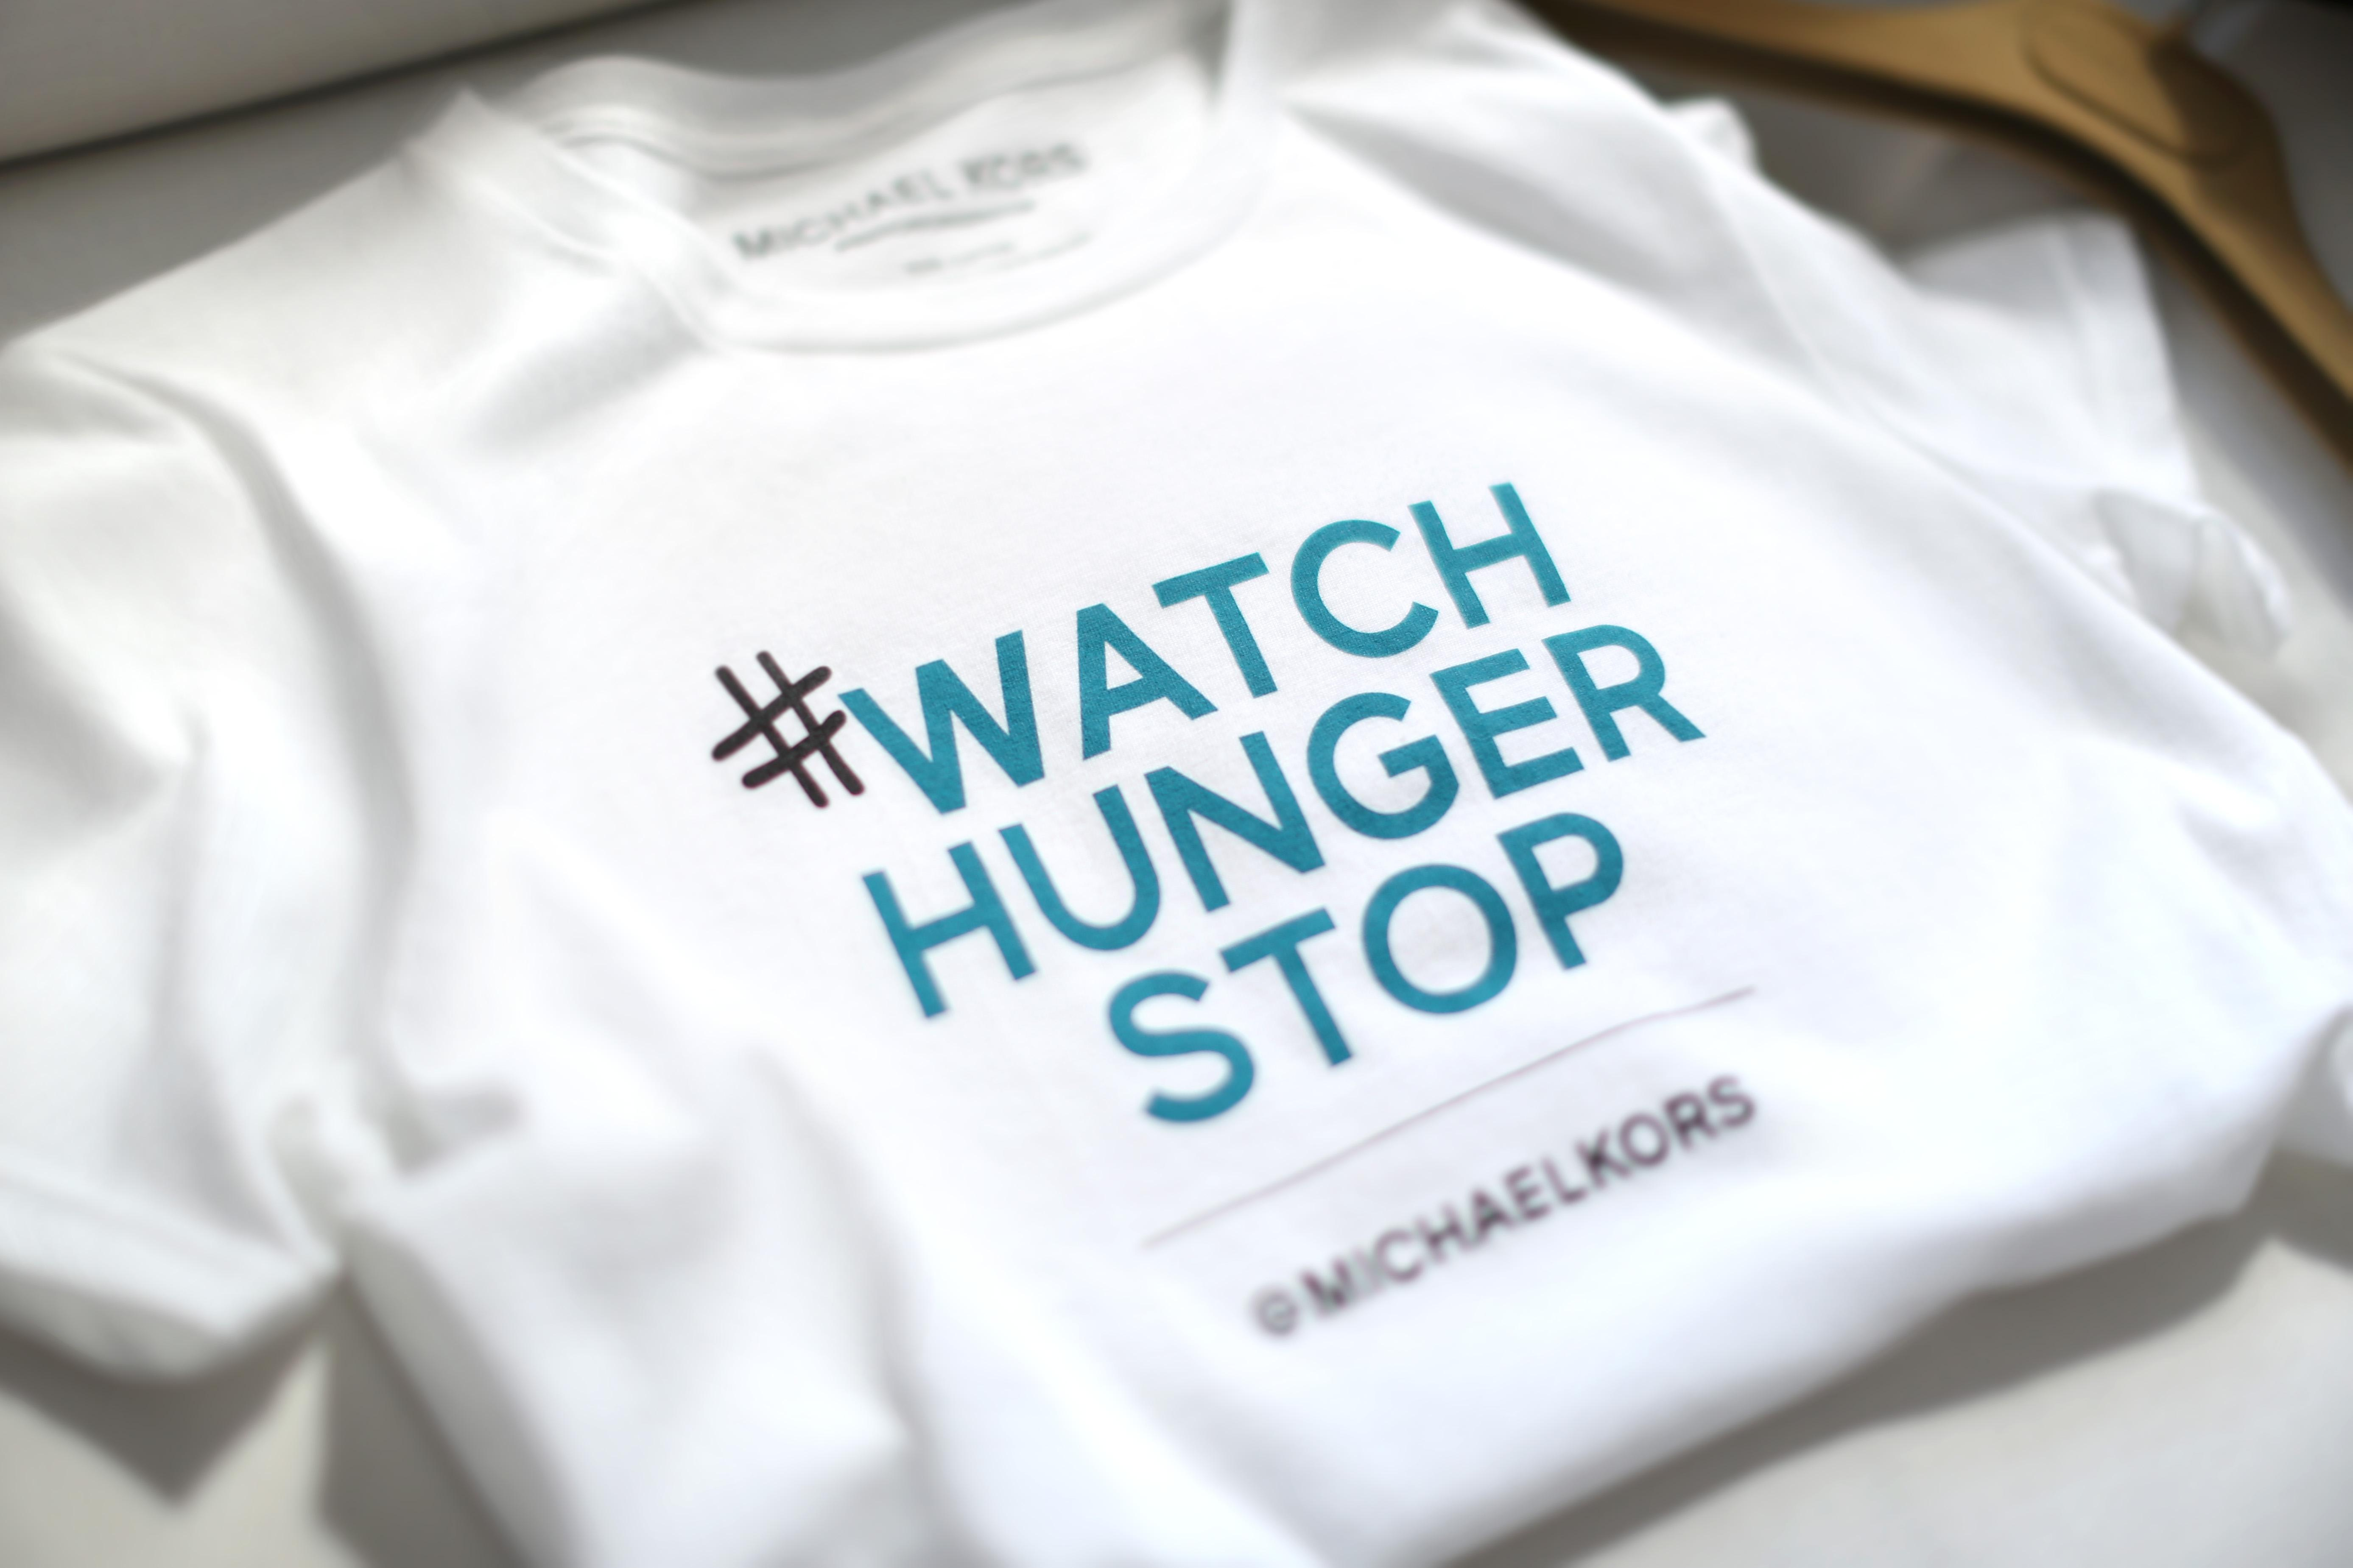 Michael Kors presents his partnership with World Food Programme and